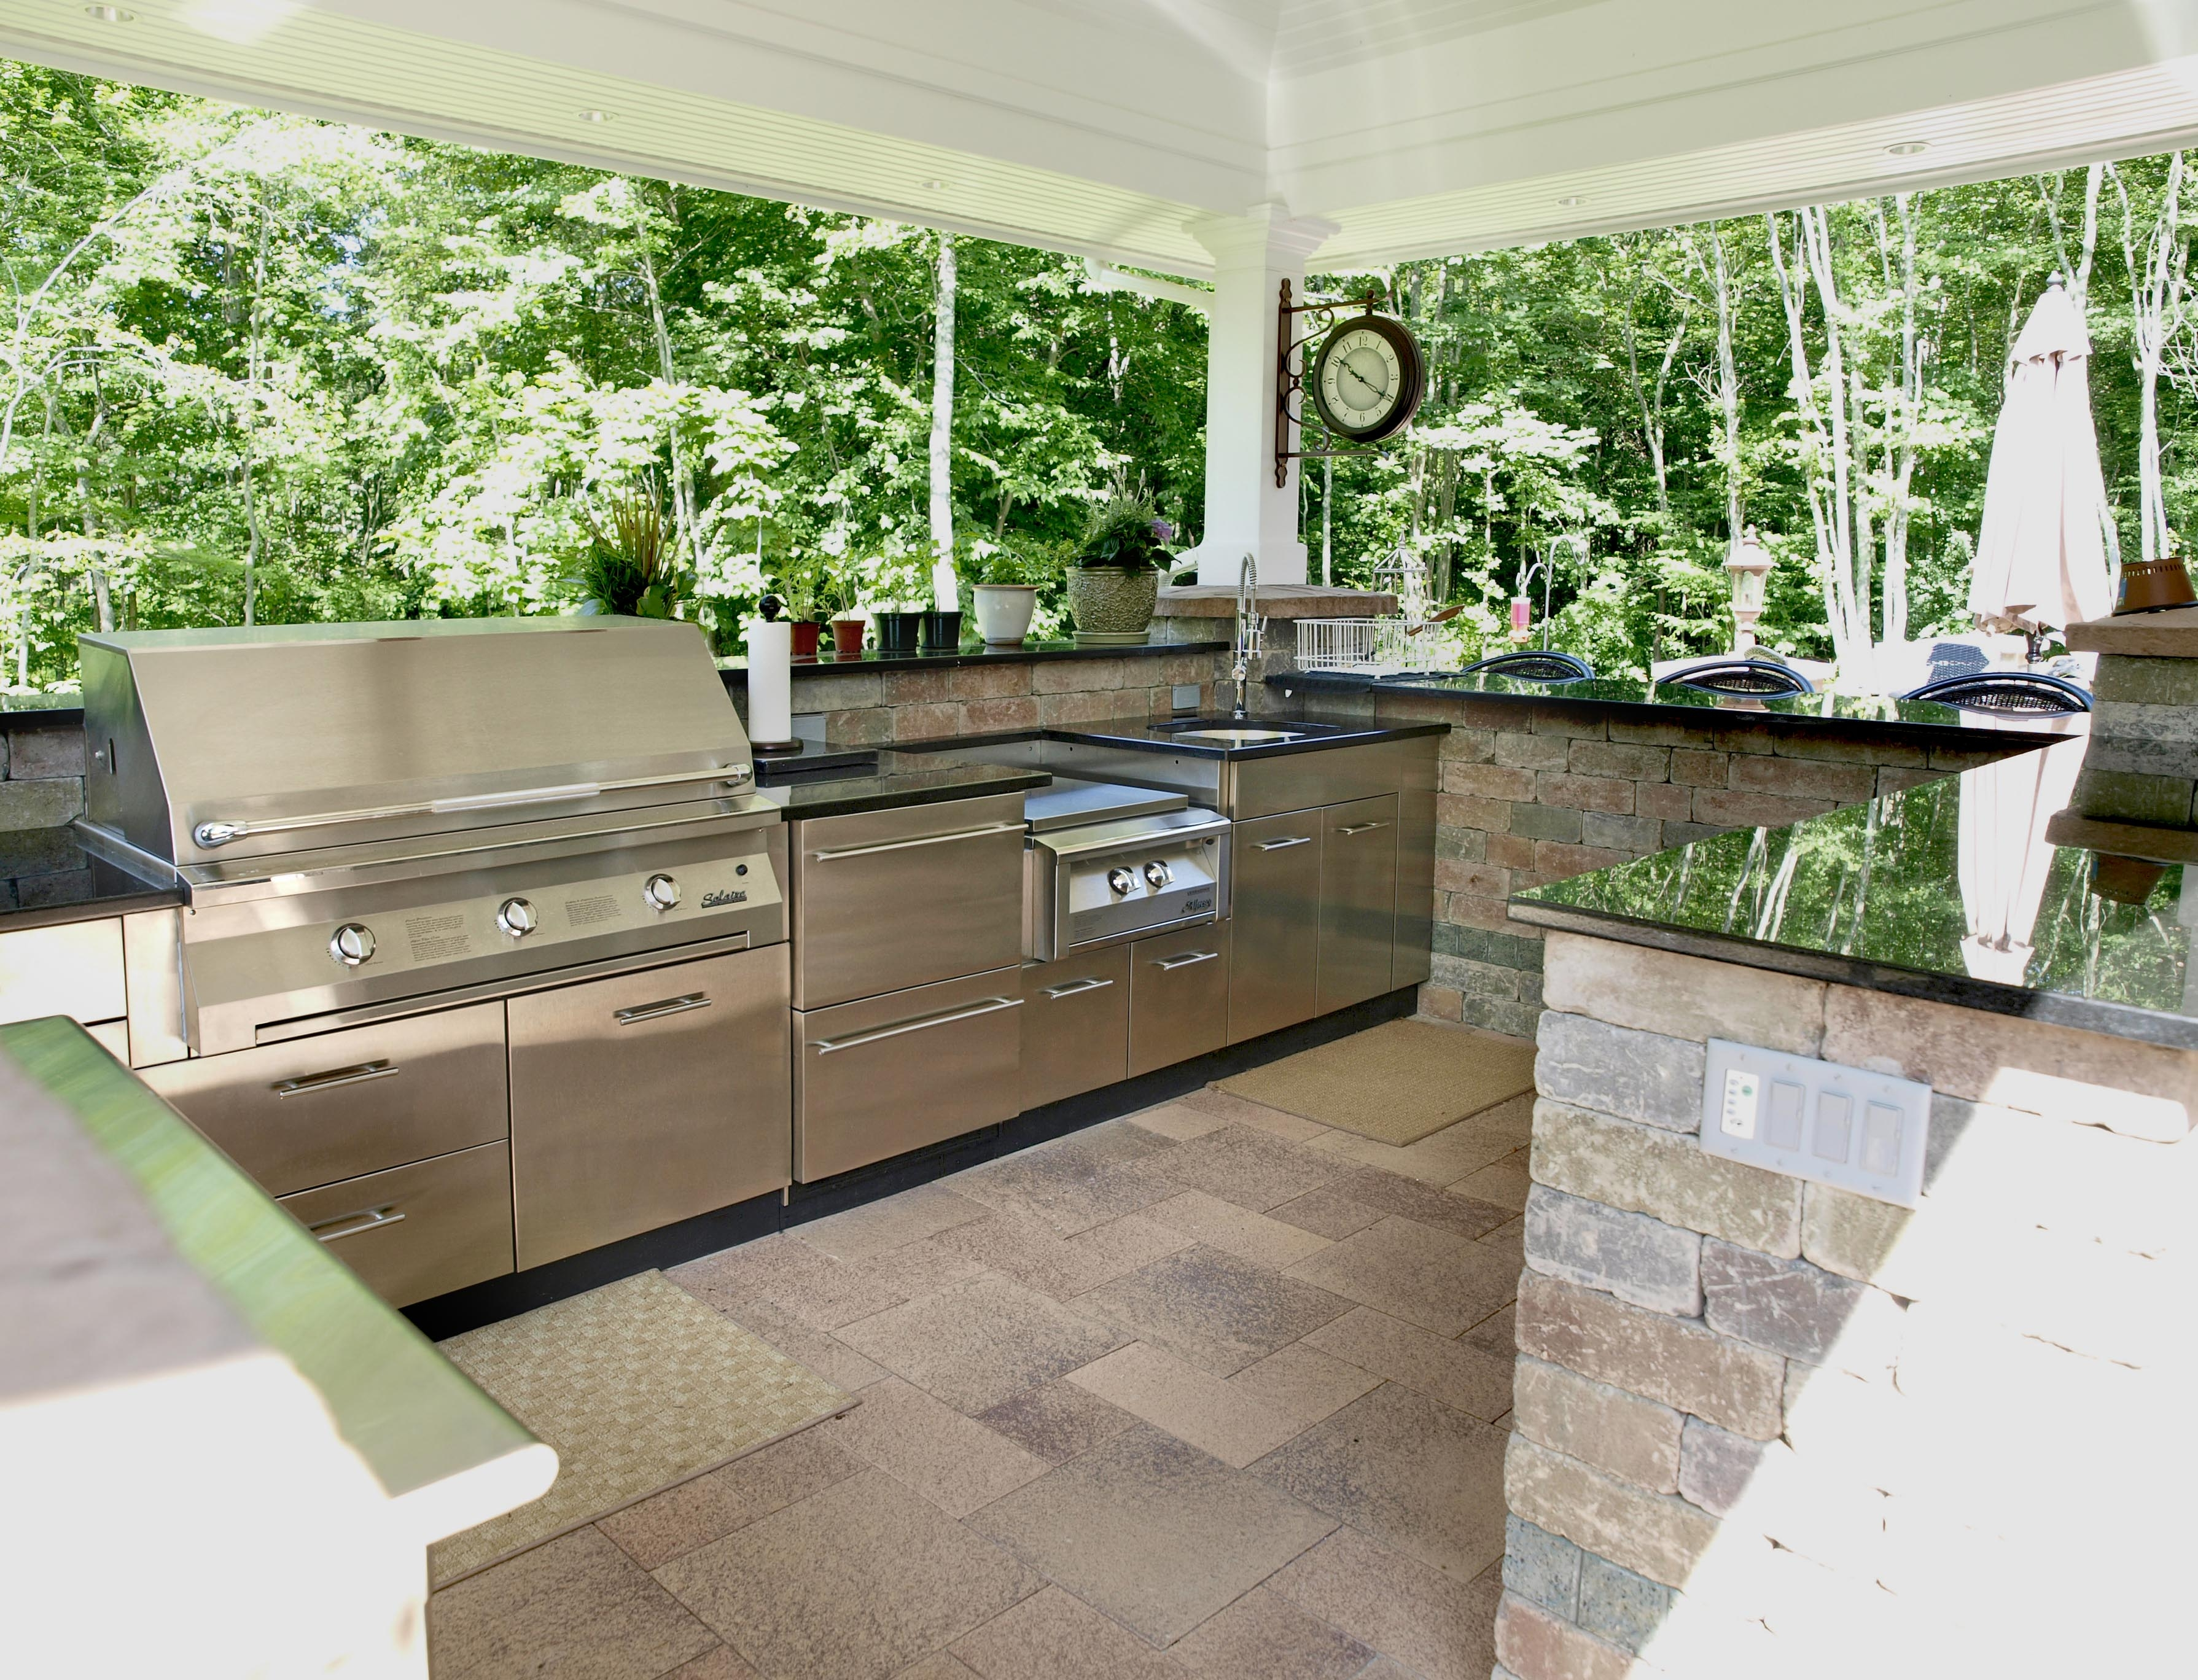 outdoor kitchen images photo - 10